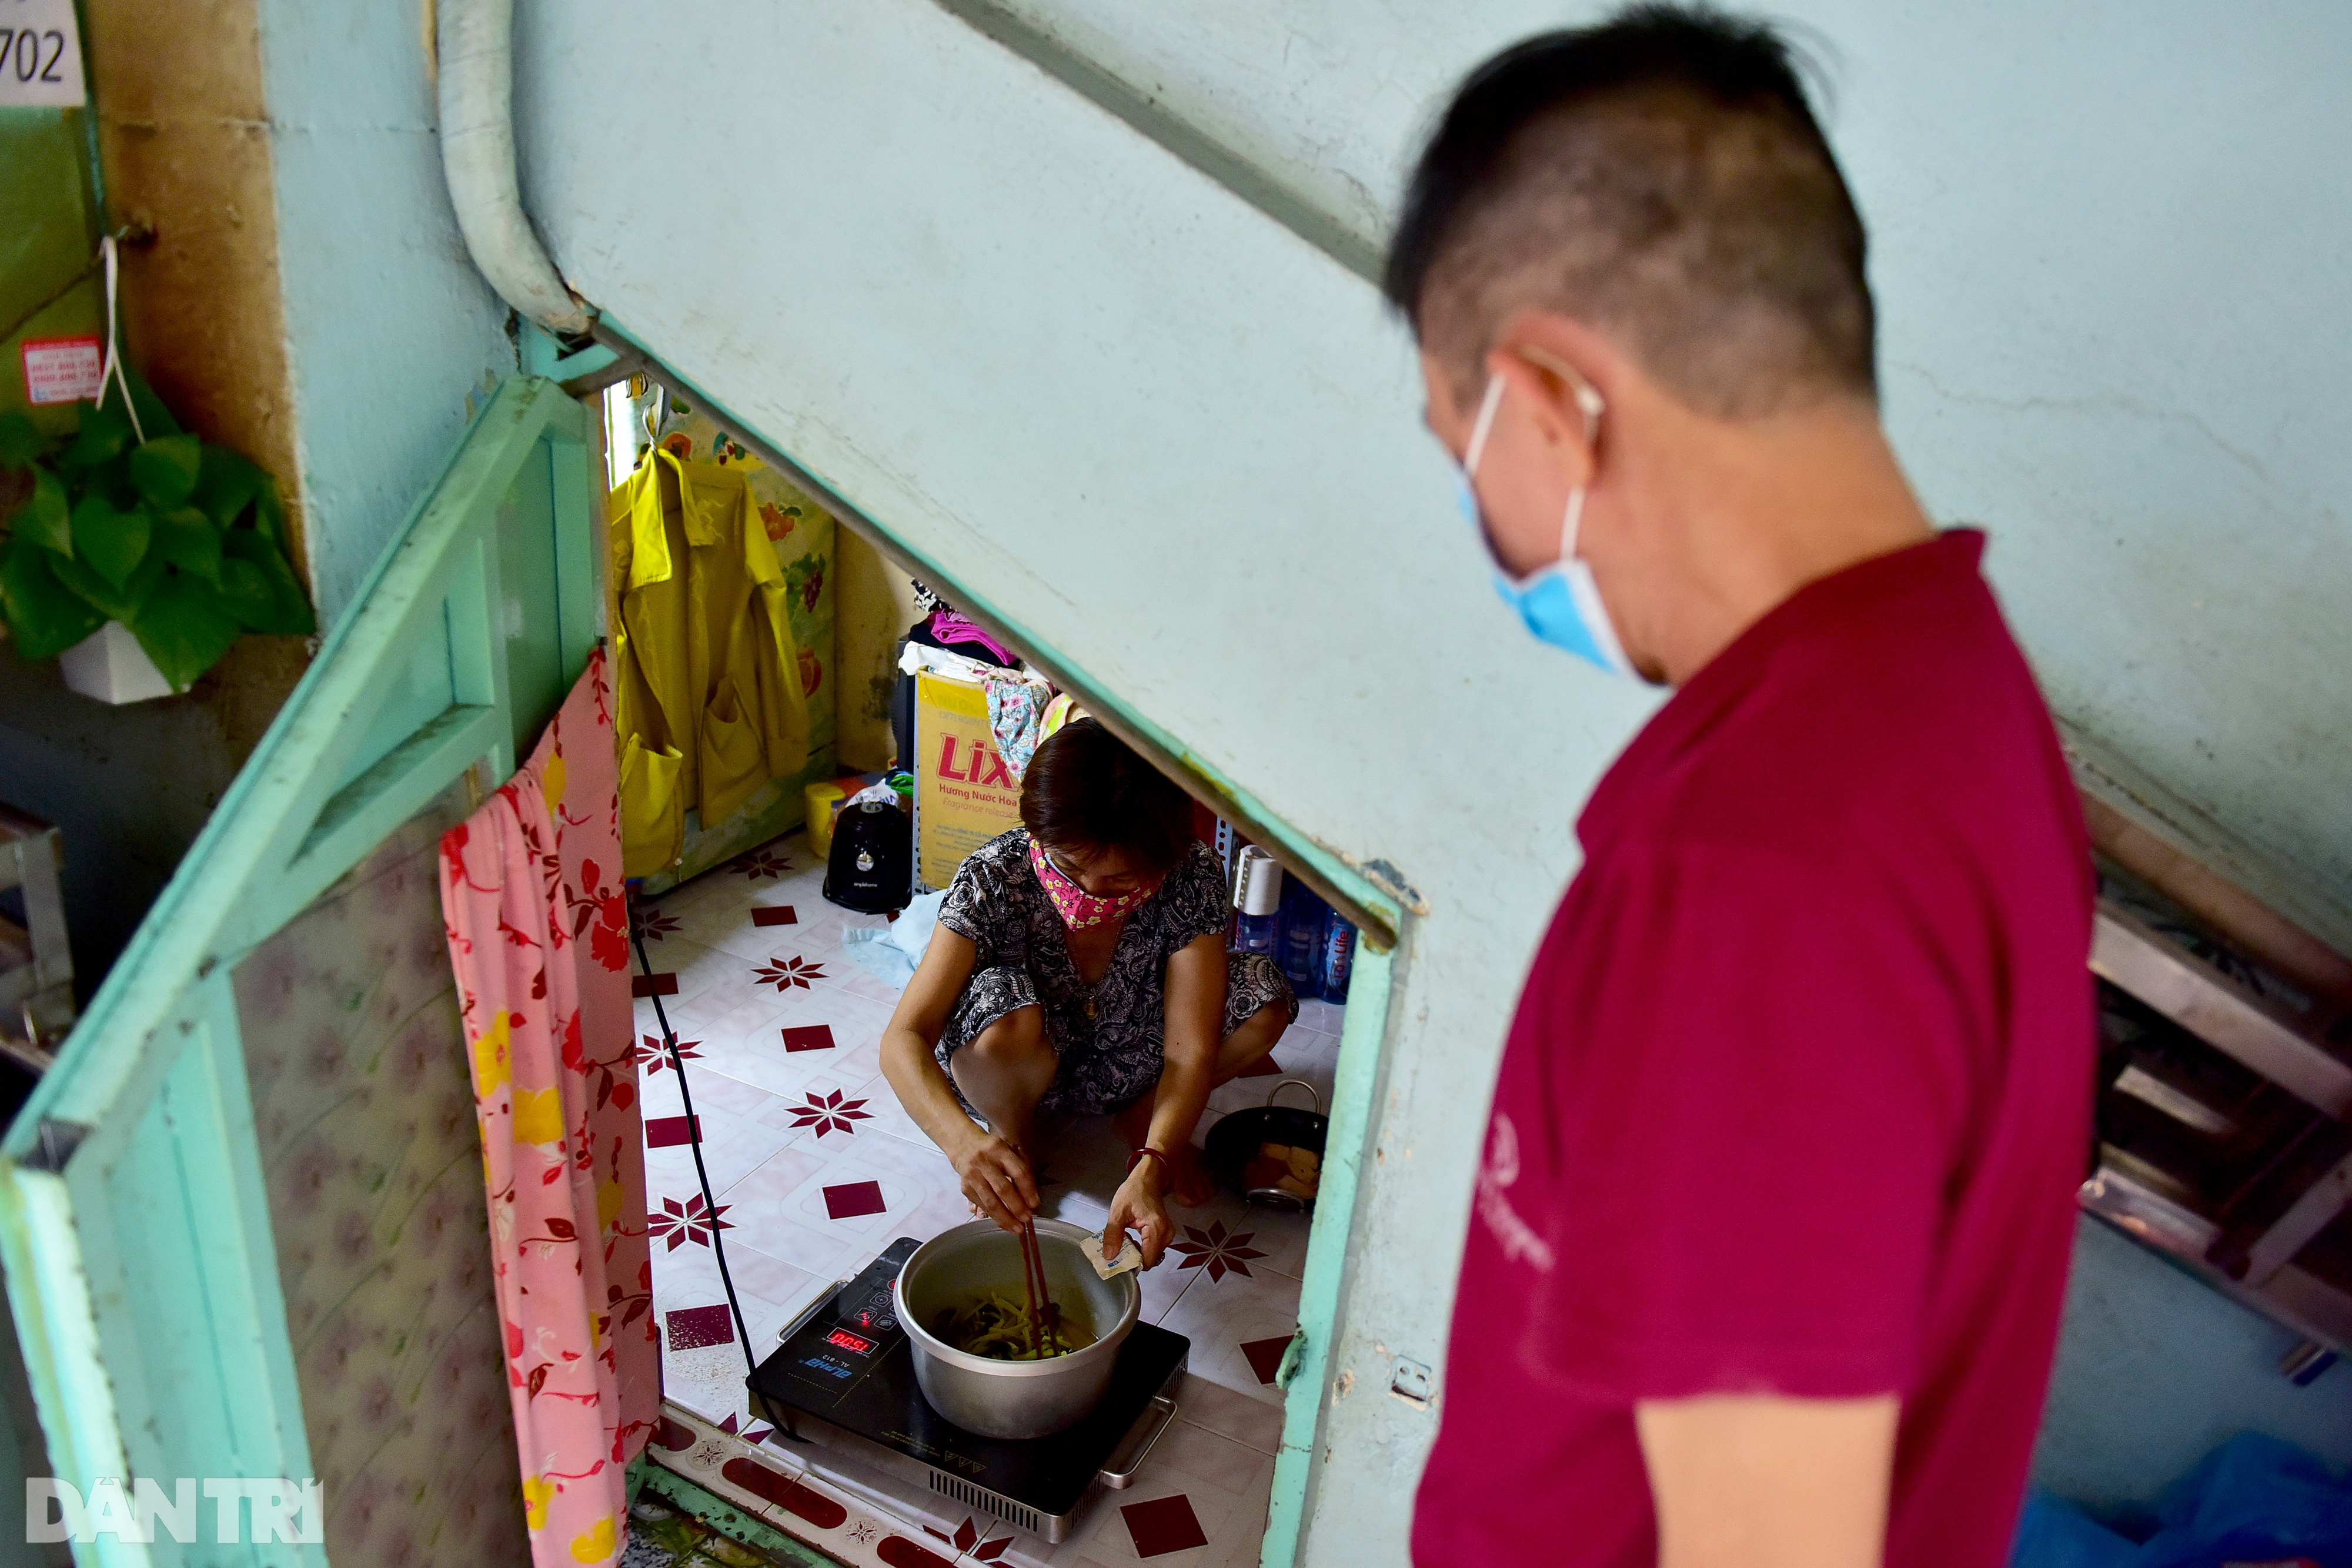 The couple for 34 years lived in 5m2 under the stairs of the Saigon apartment building - 4